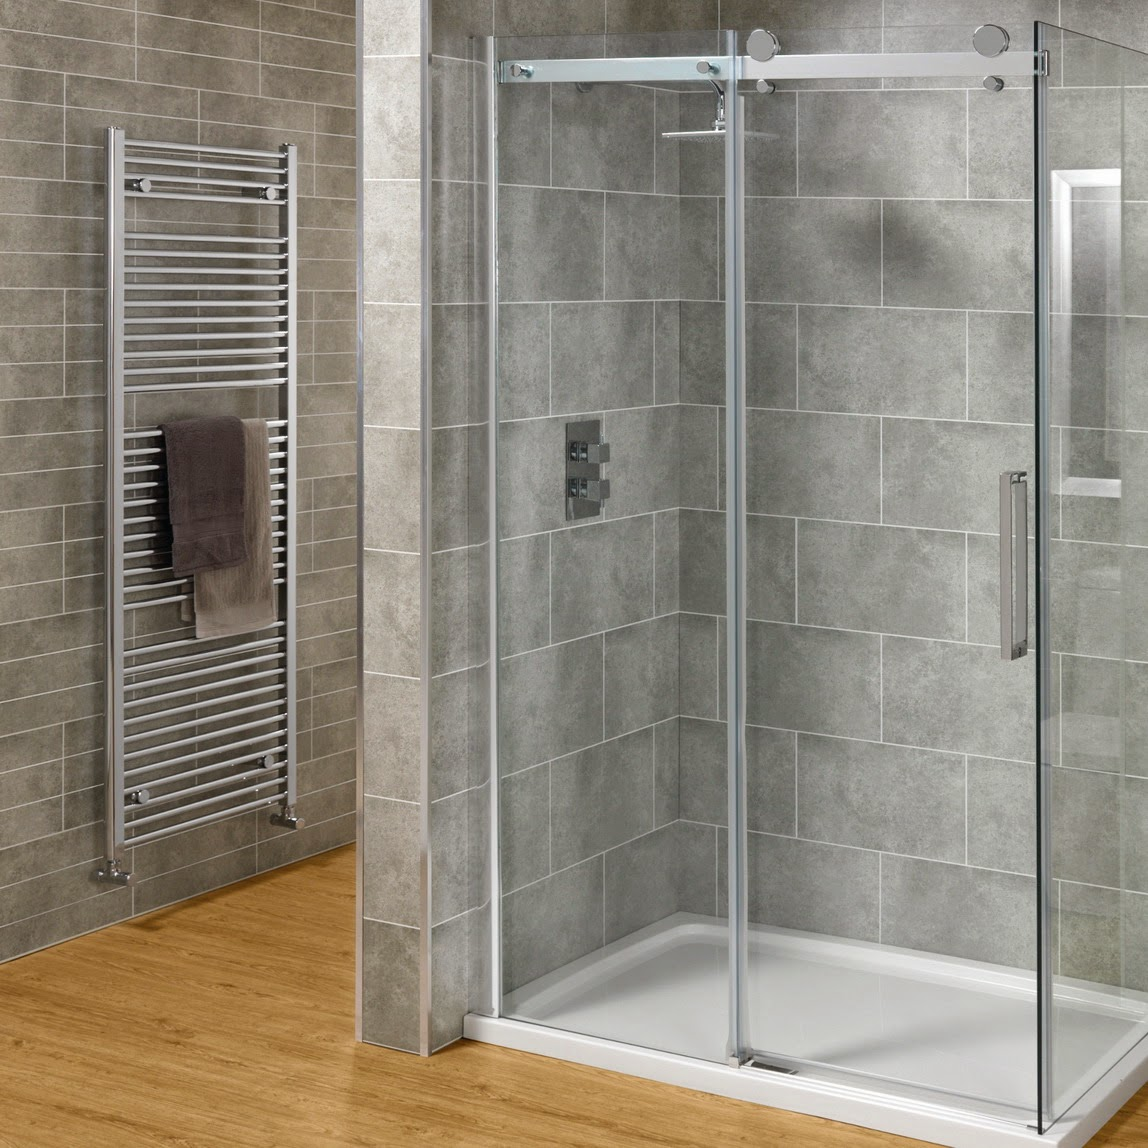 Designing a Shower Wall With a Curved Or Angled Glass Block ...